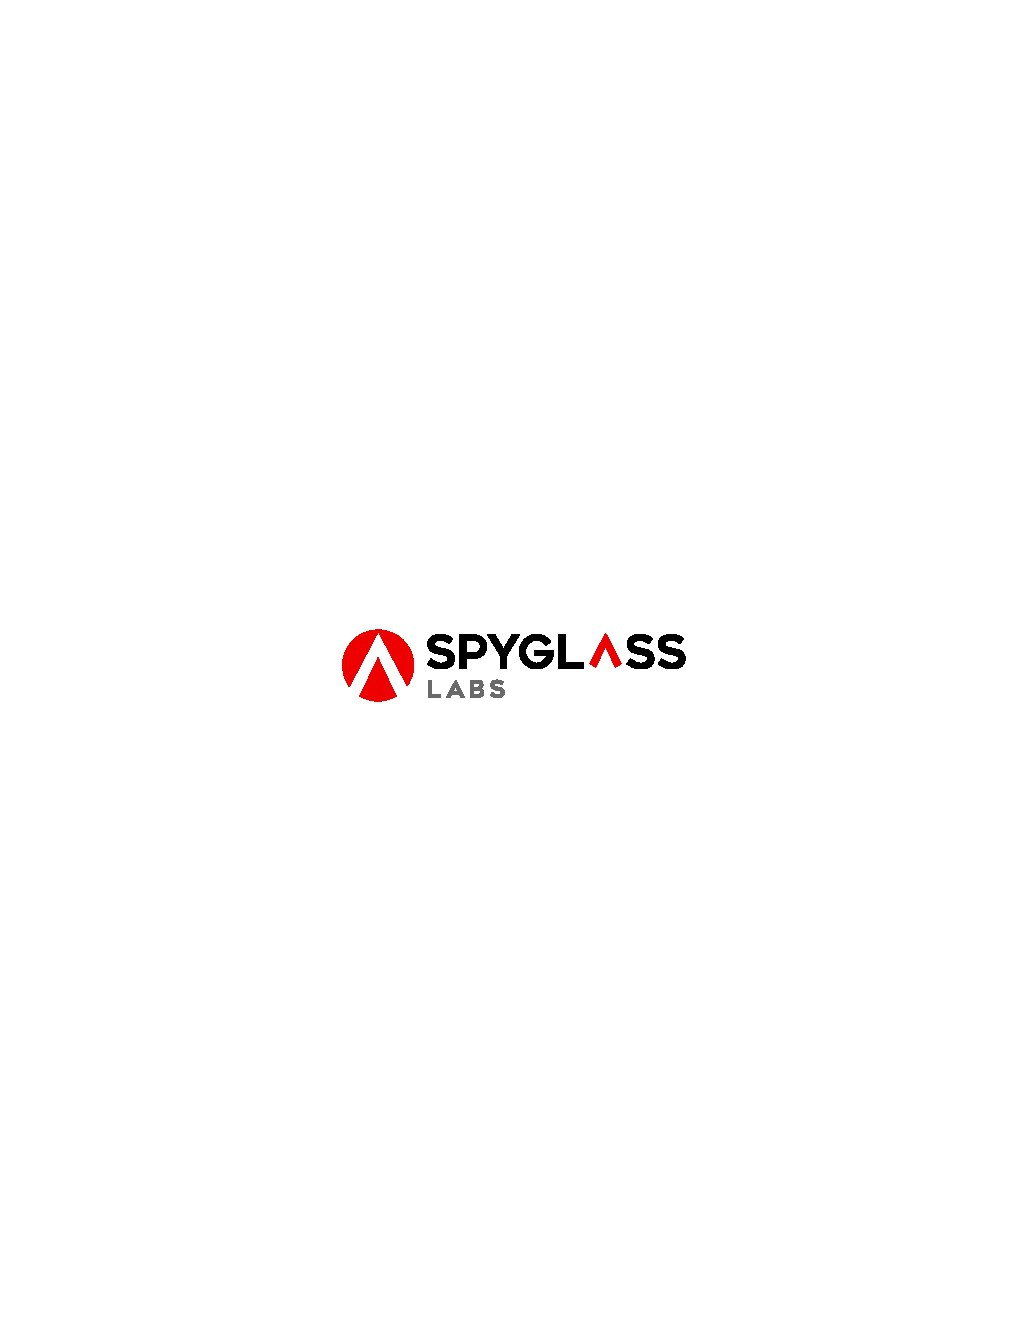 Logo design - Management Consulting firm - Spyglass Labs